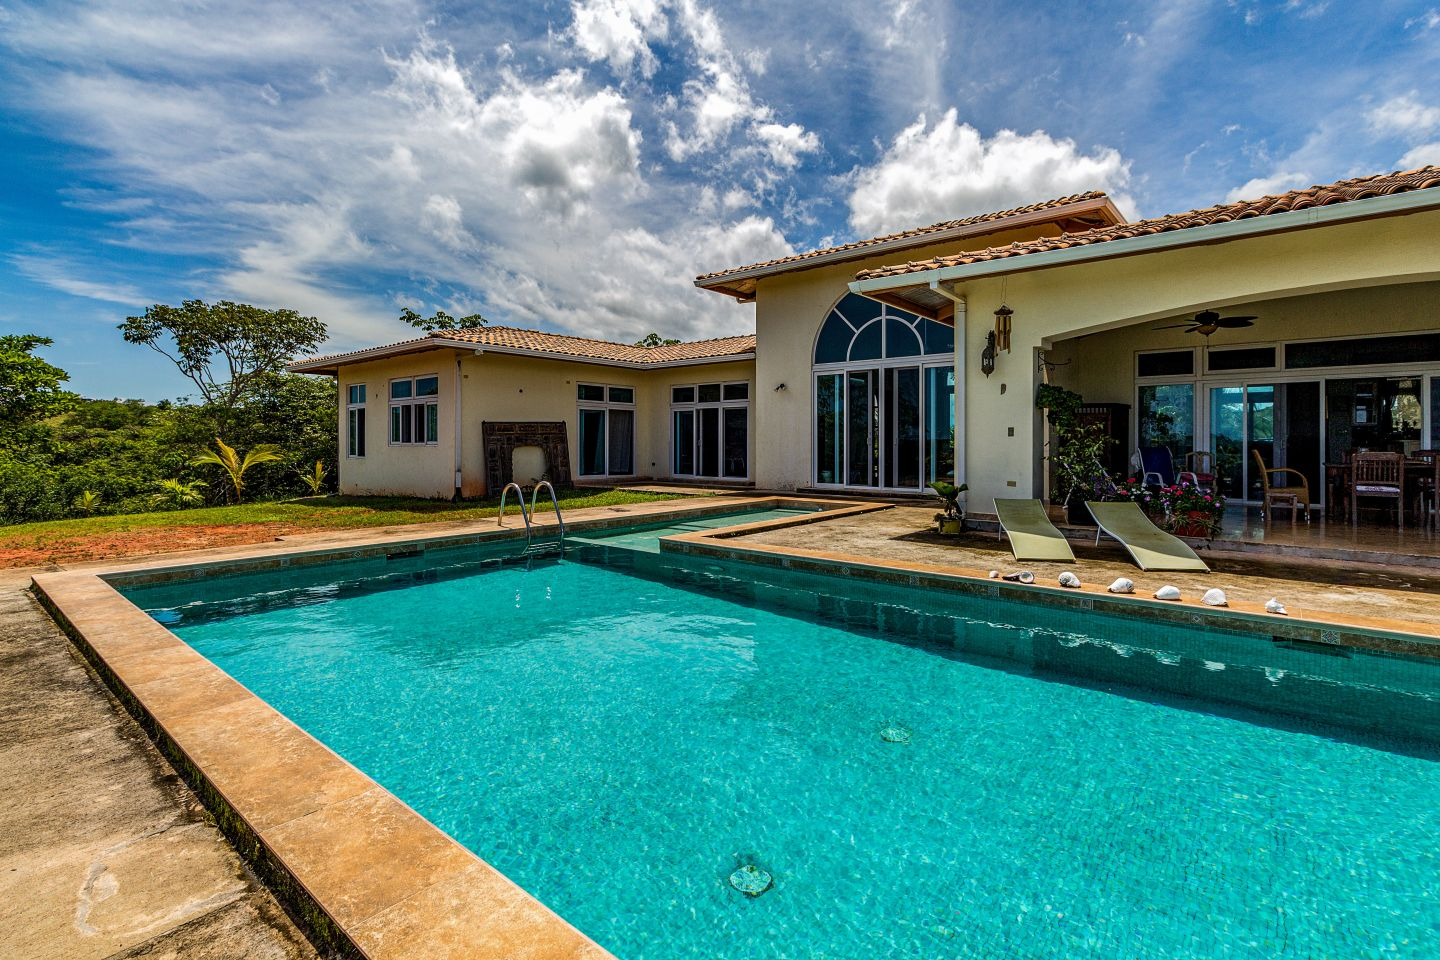 Anuncios in Houses and Land - Villa